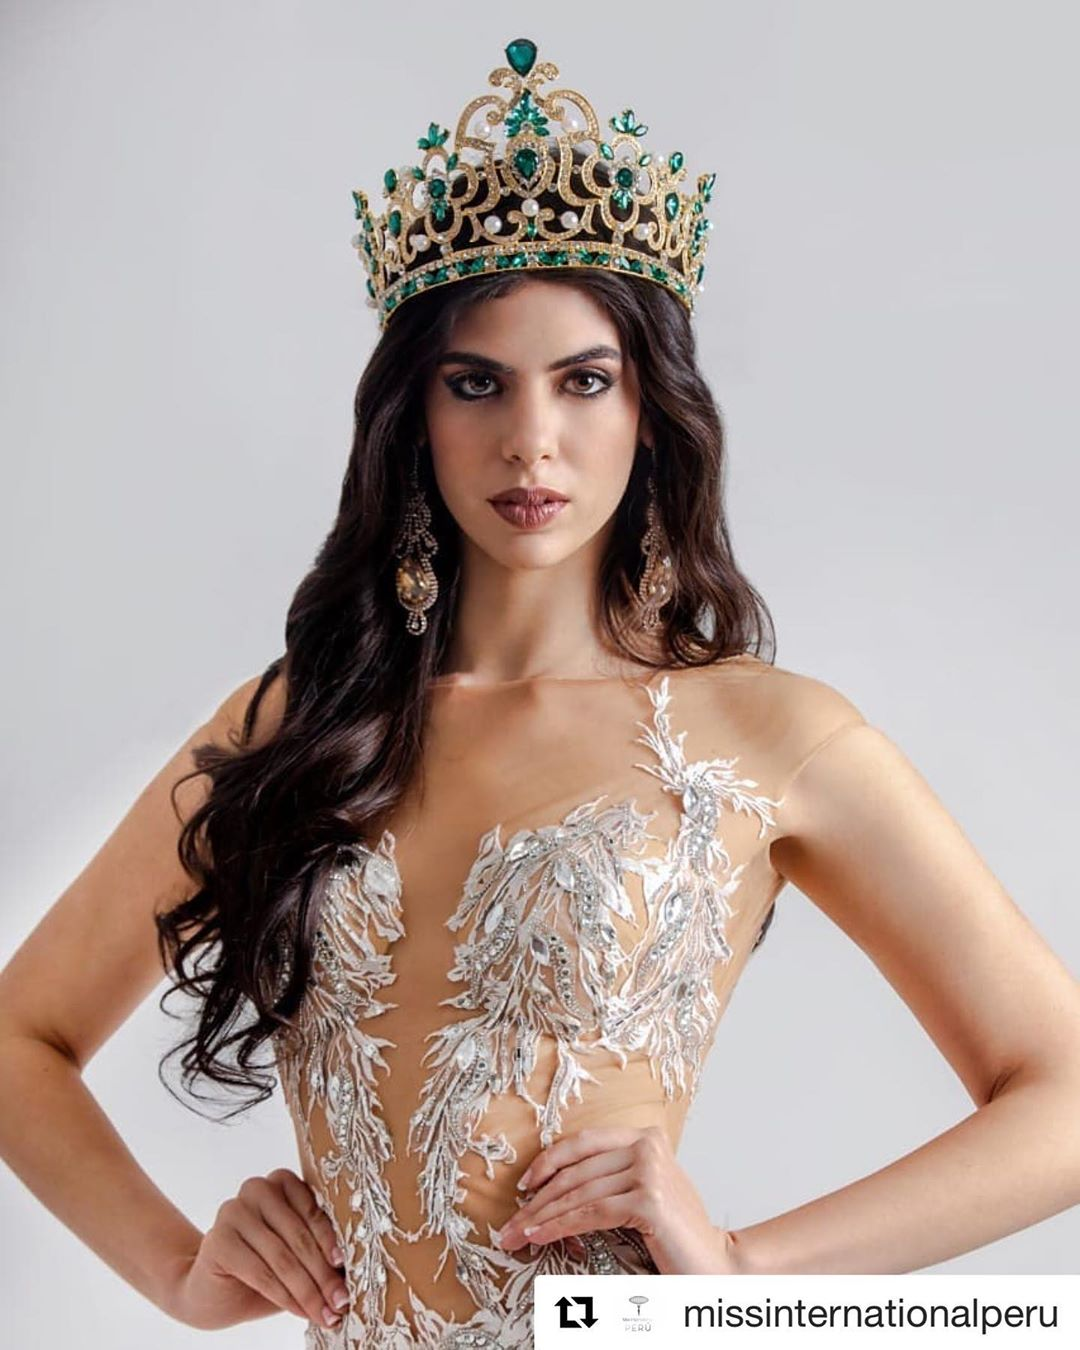 majo barbis, miss international peru 2019. 69516910